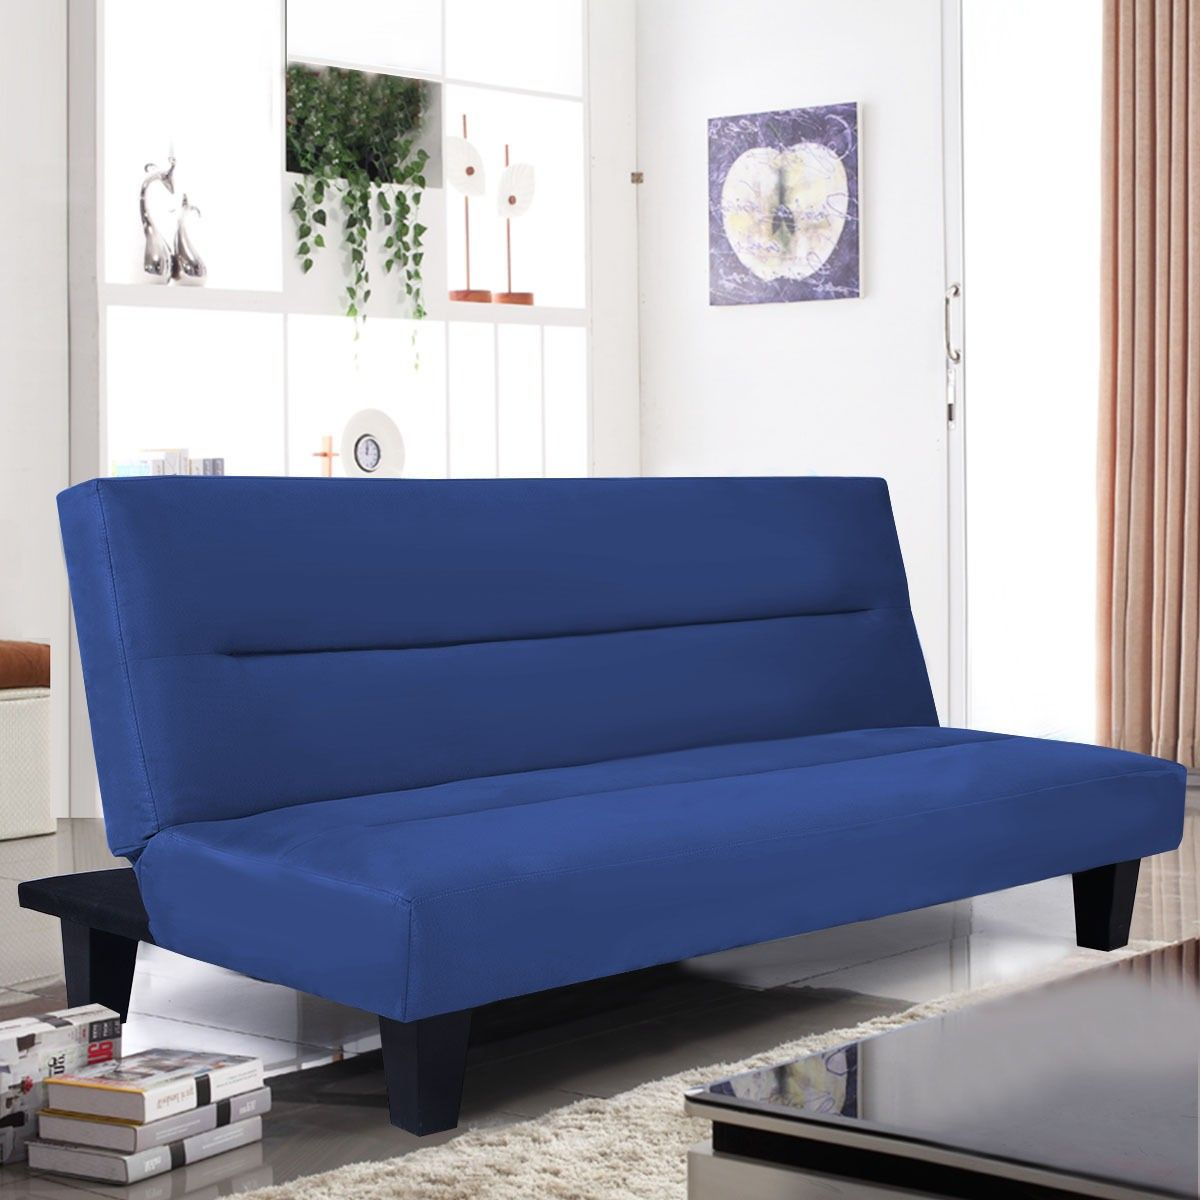 This Comfortable Low Set Sofa Bed Is Perfect For Hanging Out In The Lazy Afternoon Or Getting Some Rest During Nig Sofa Couch Bed Futon Living Room Futon Sofa